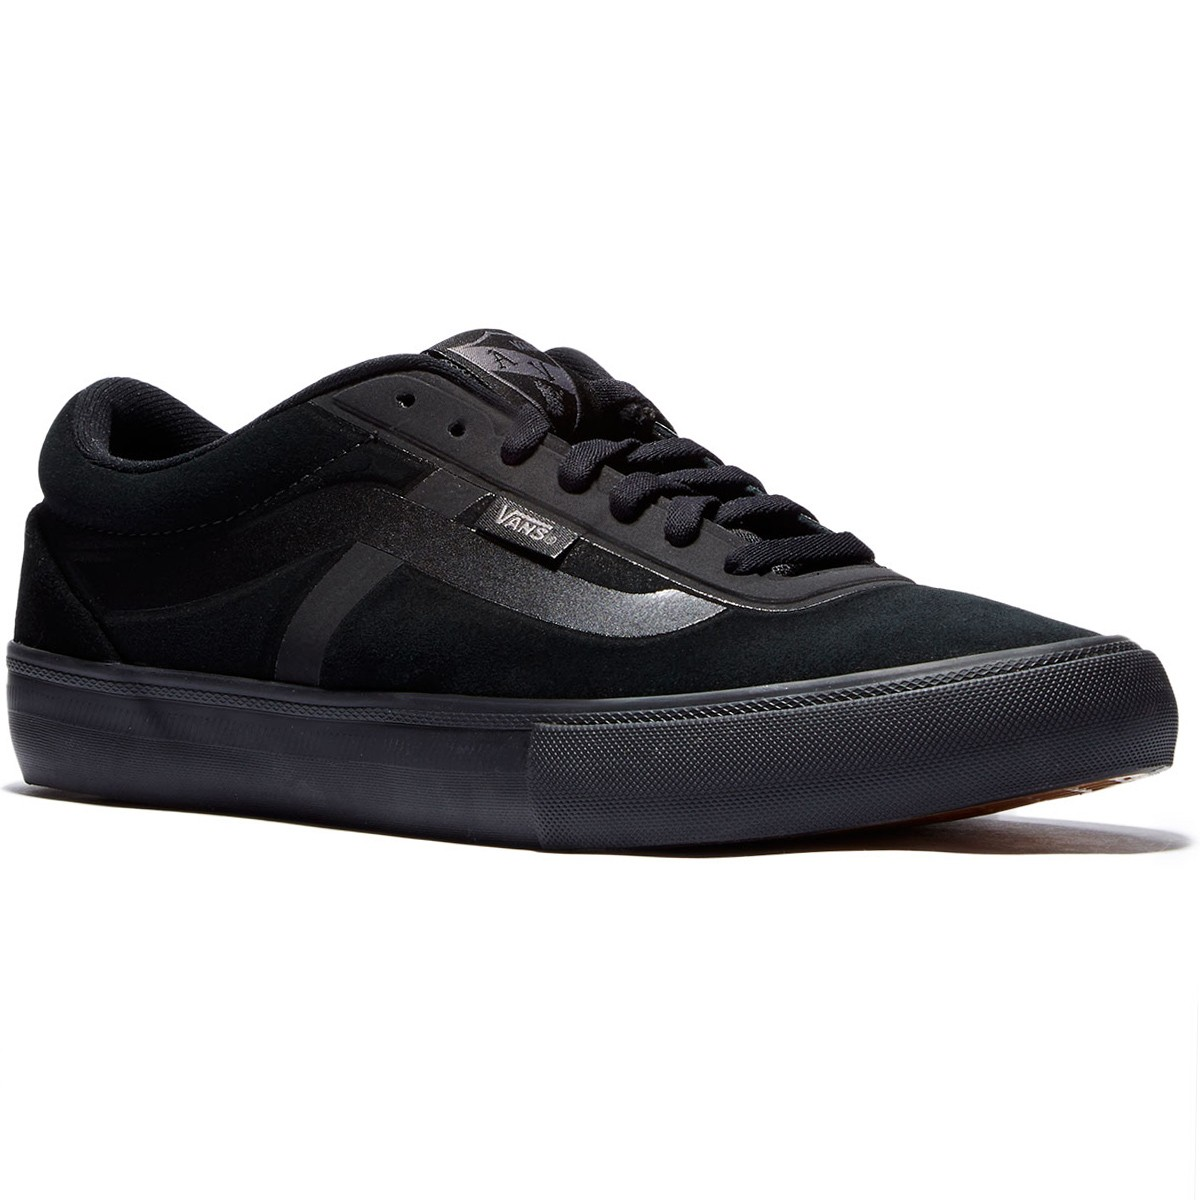 Vans AV RapidWeld Pro Shoes - Blackout